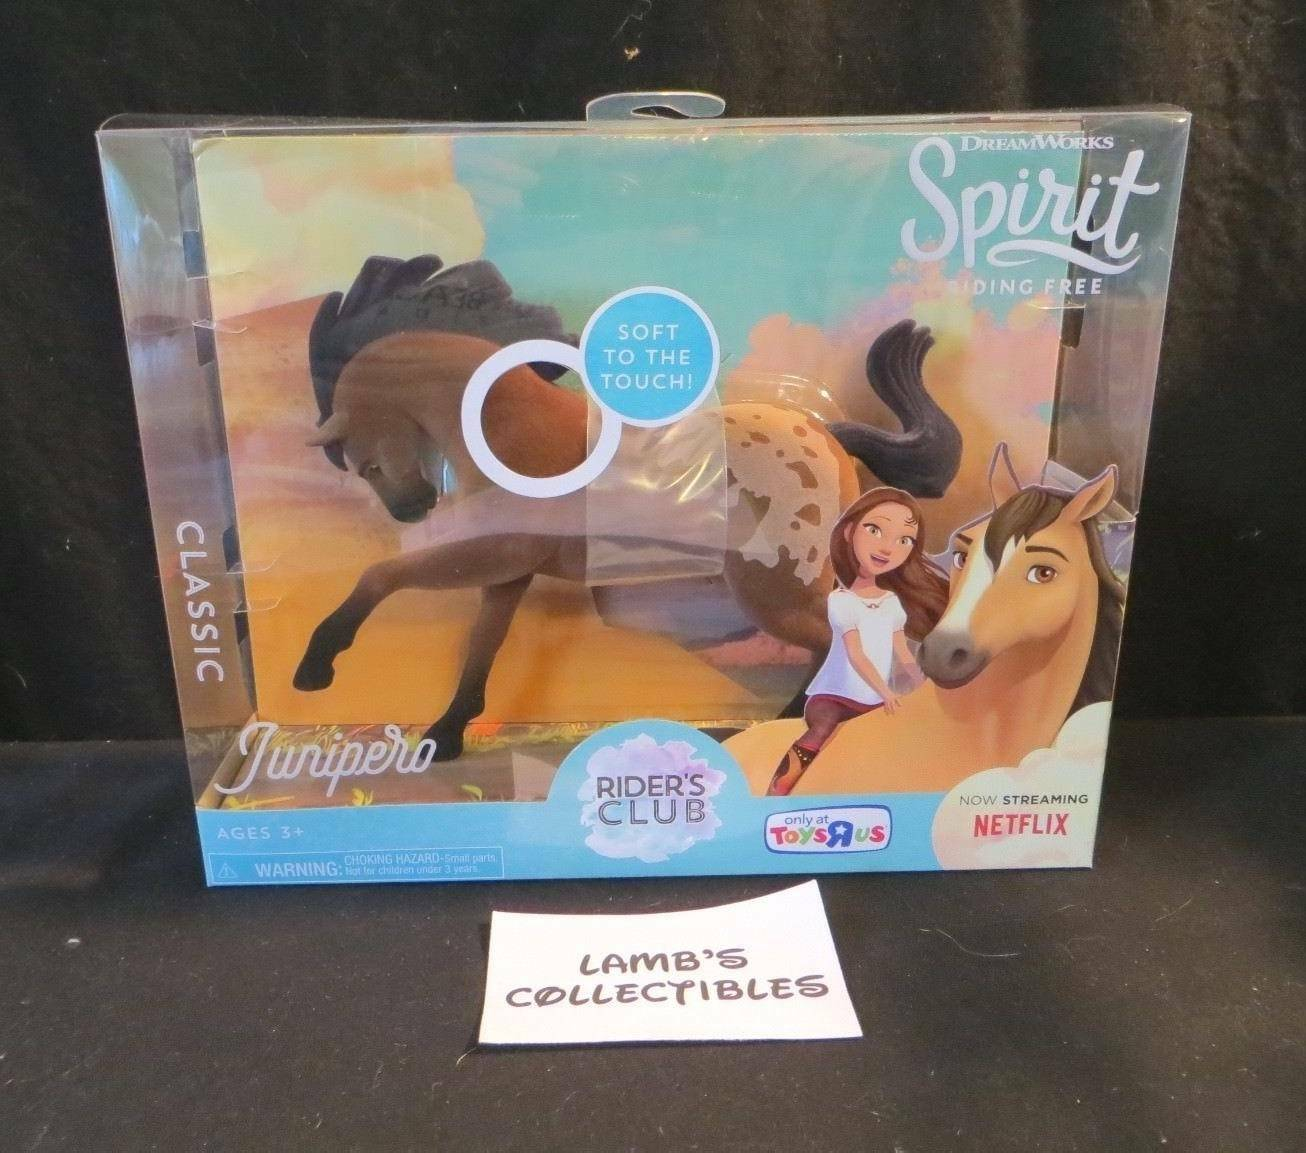 Primary image for Dreamworks Spirit riding free Toys R Us exclusive rider's club Junipero classic